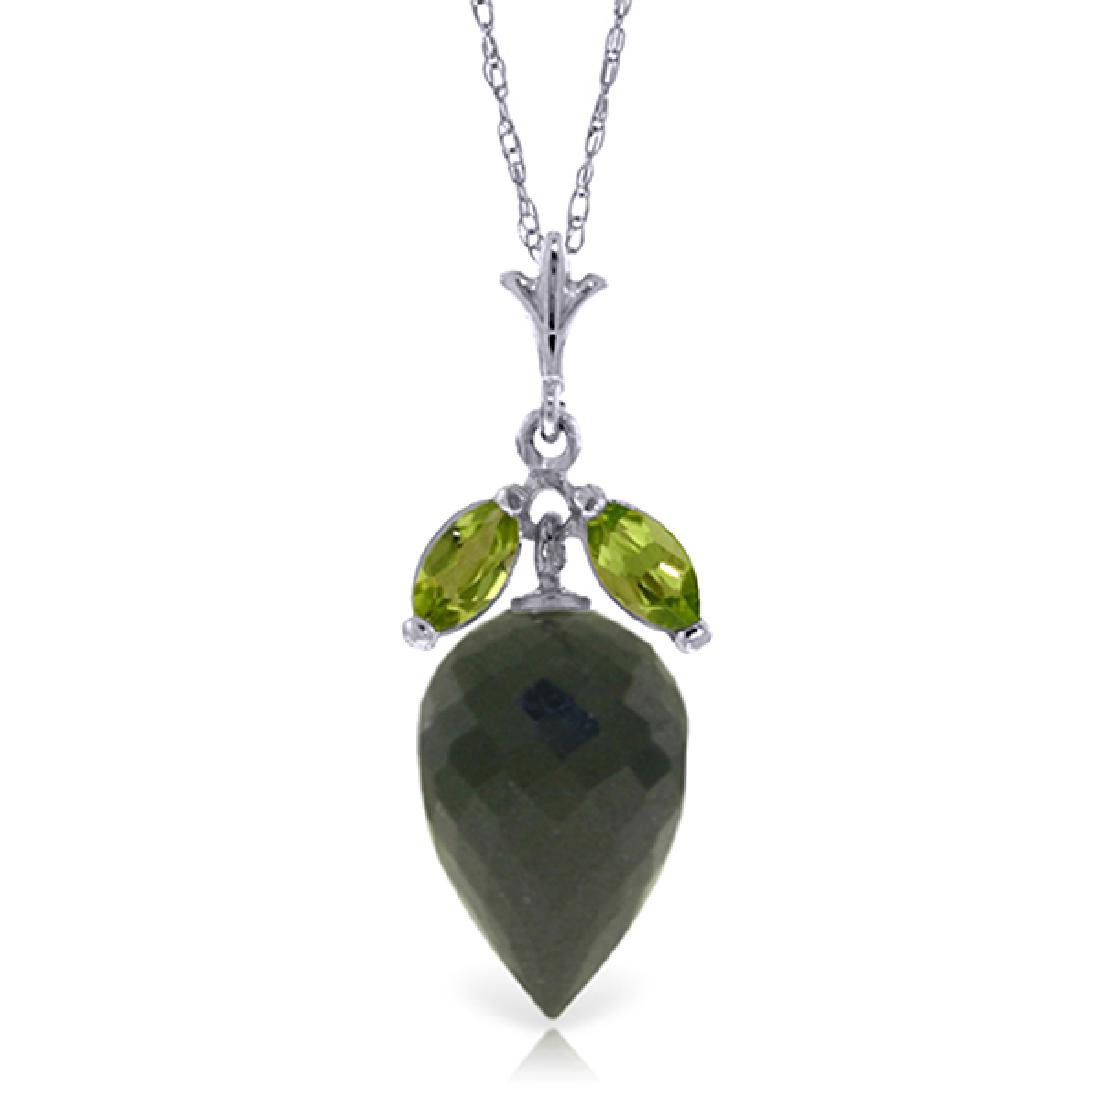 Genuine 12.75 ctw Black Spinel & Peridot Necklace